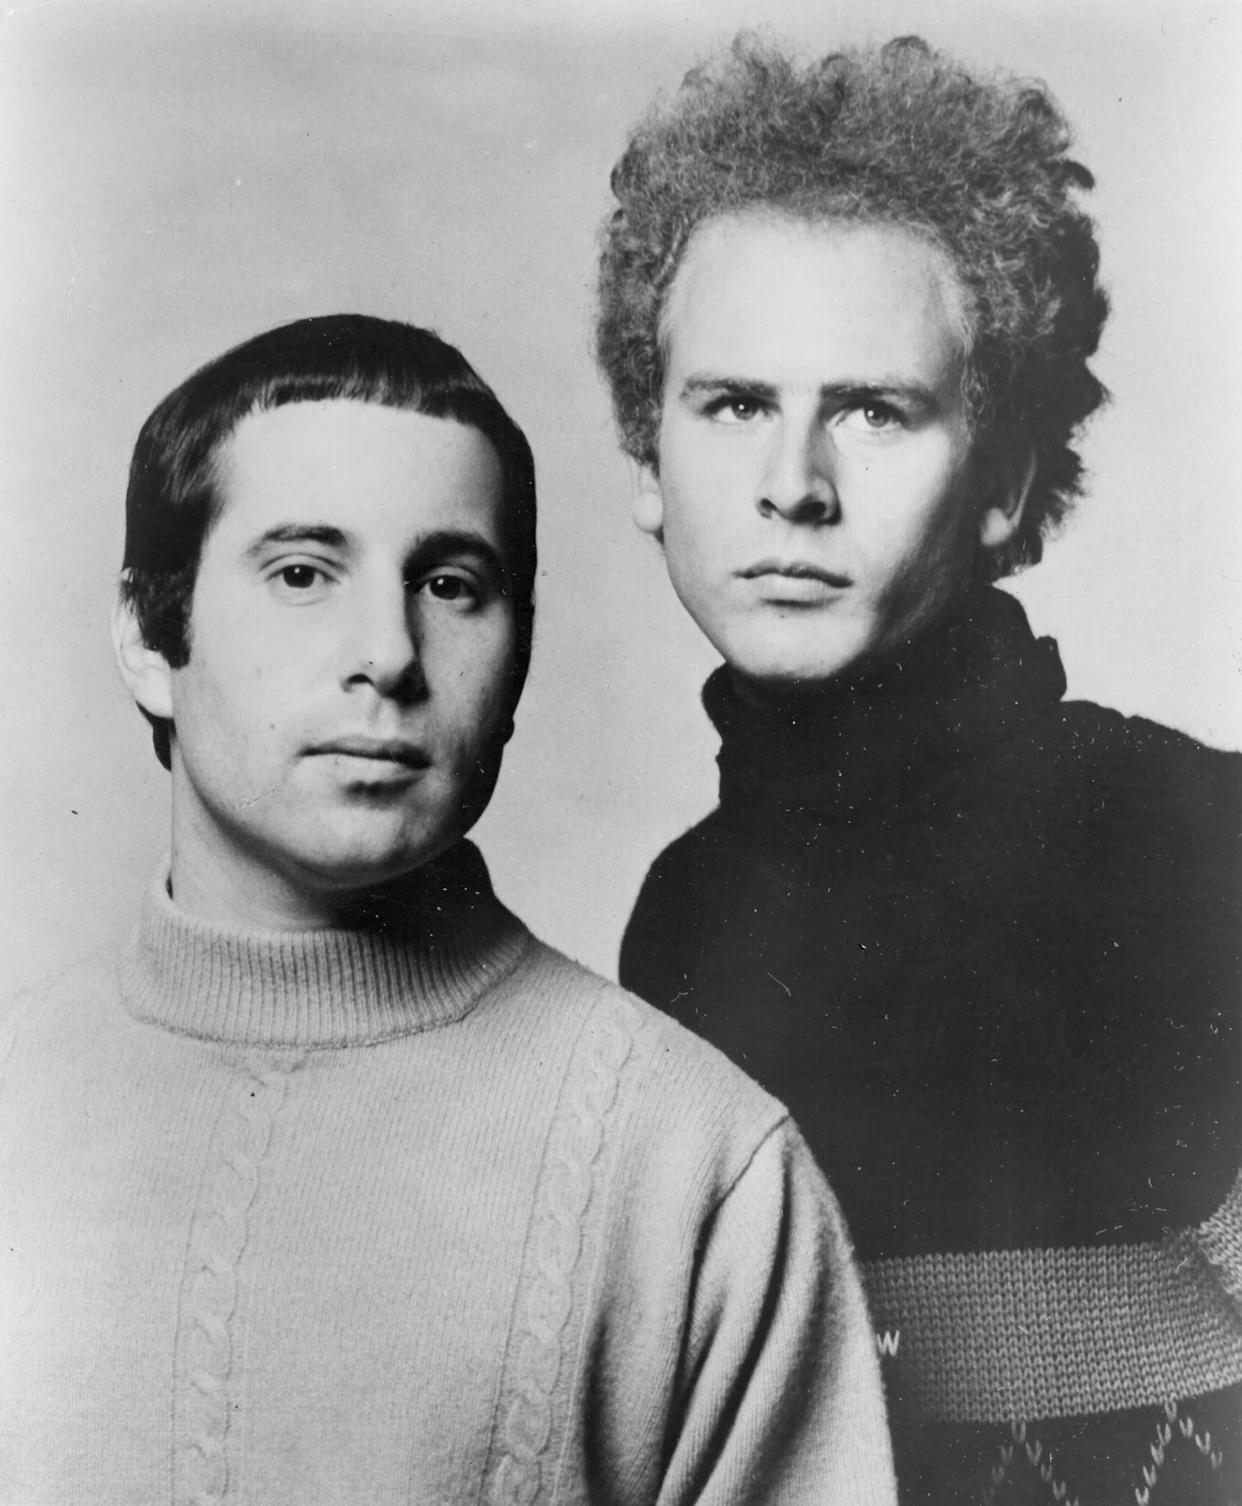 Garfunkel, with Paul Simon in an almost-turtleneck, in a Columbia Records publicity still, circa 1967.